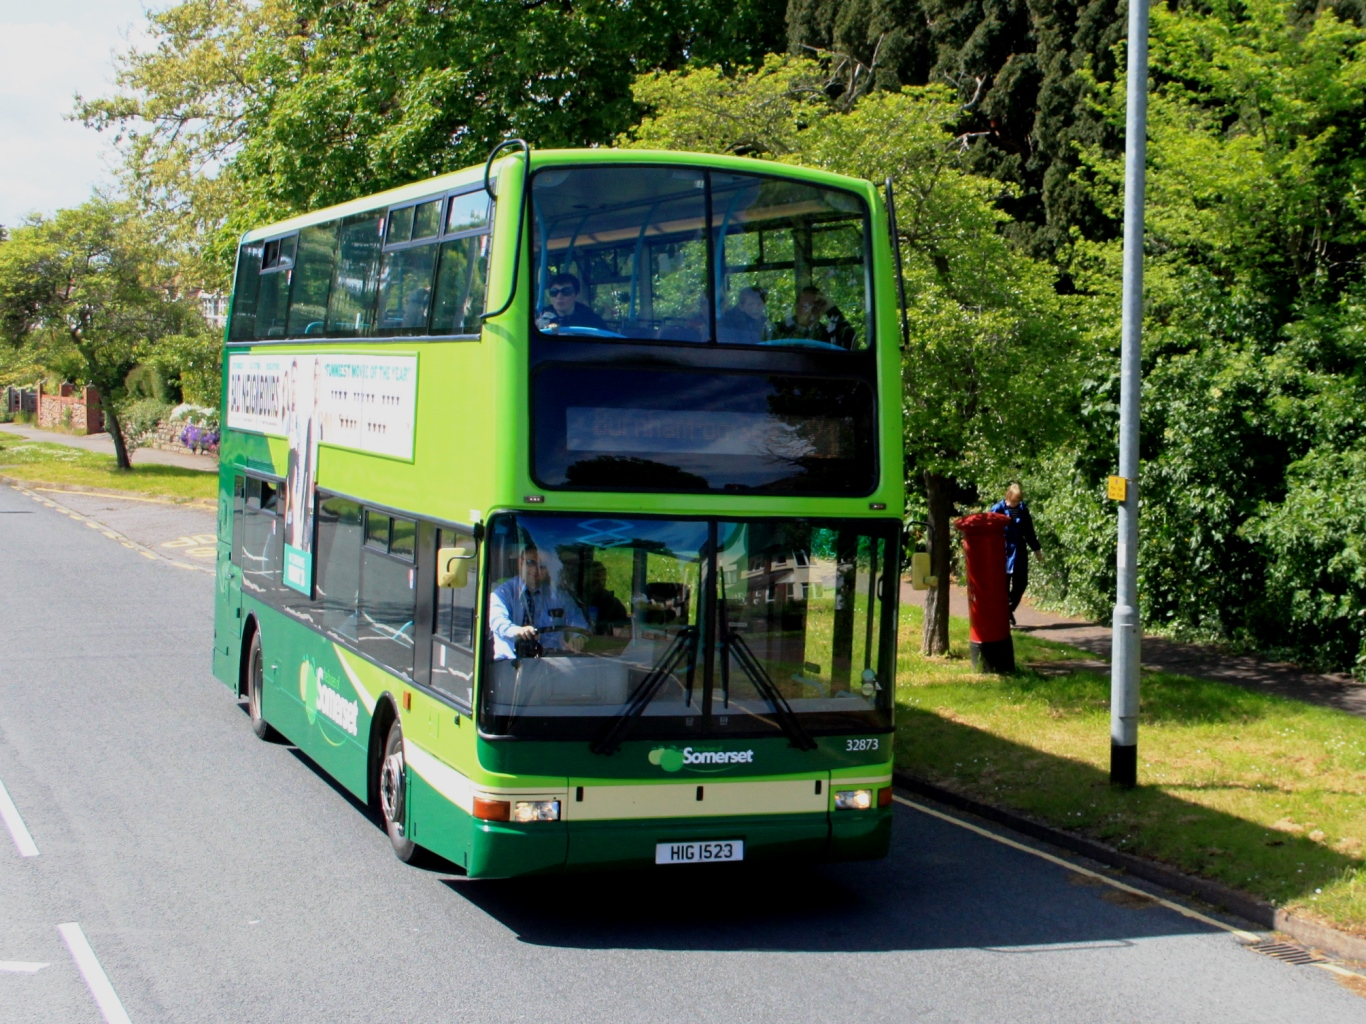 Buses of Somerset